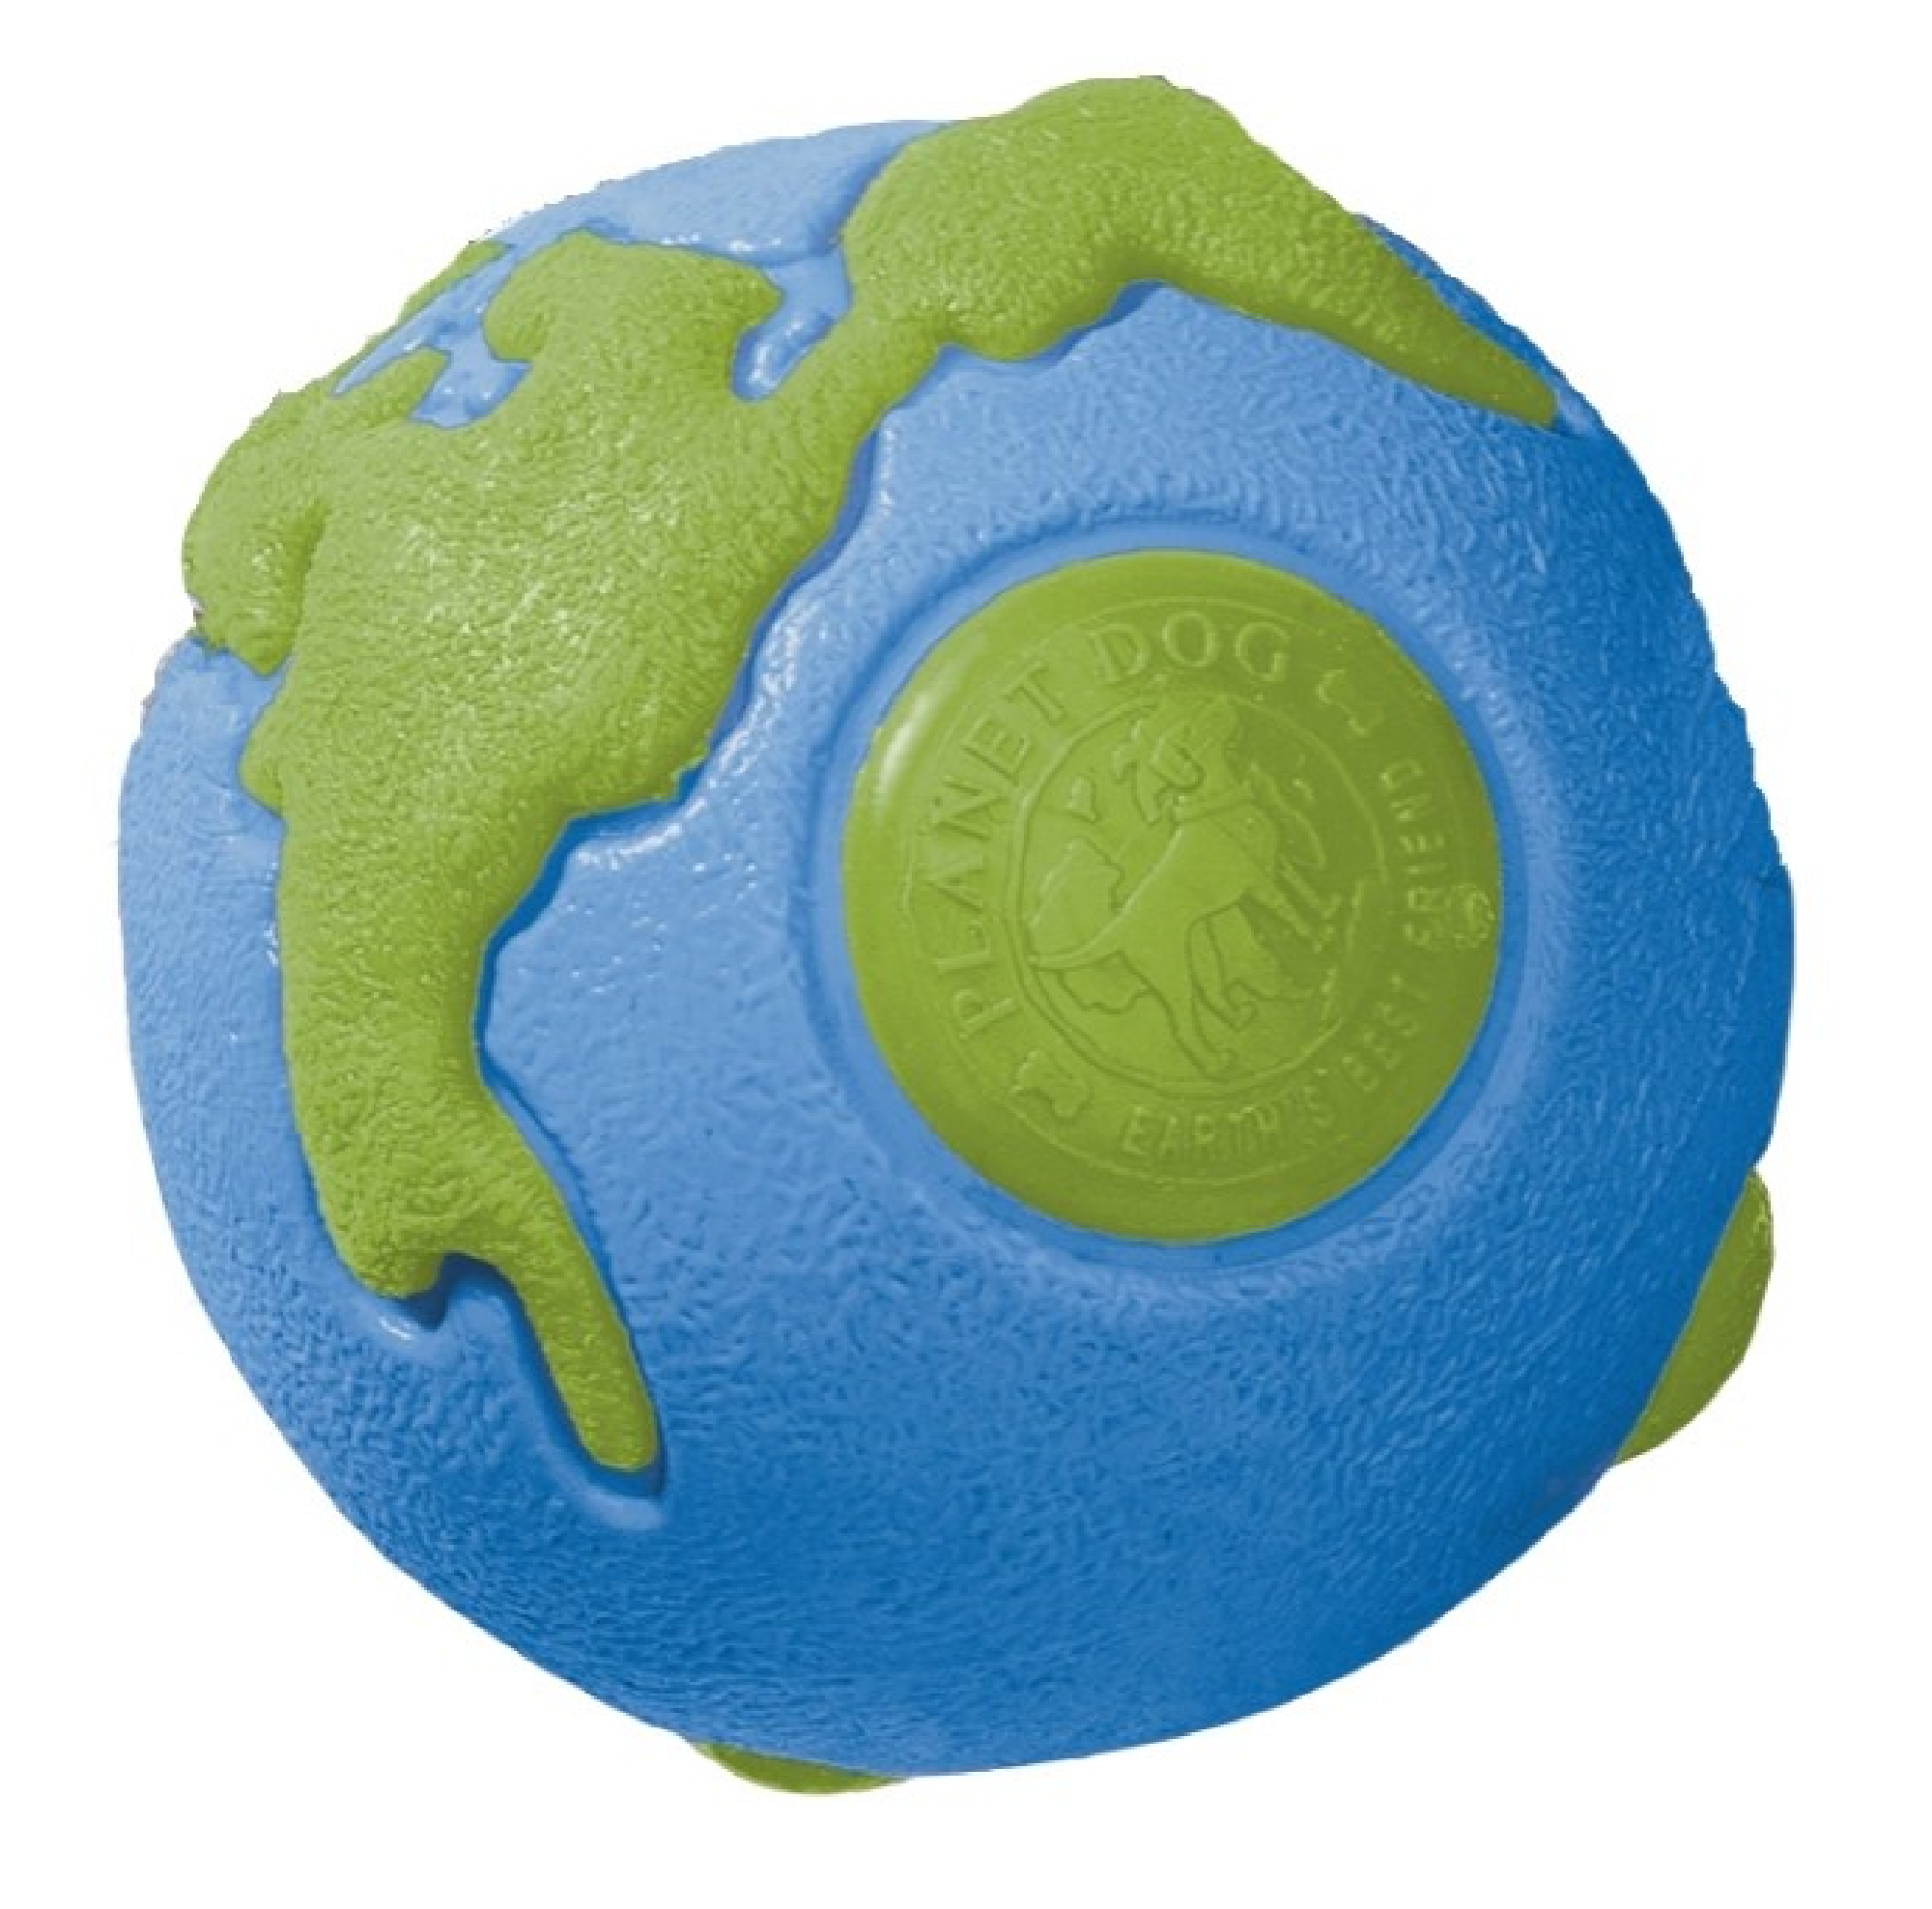 Planet Dog Orbee-Tuff Planetboll